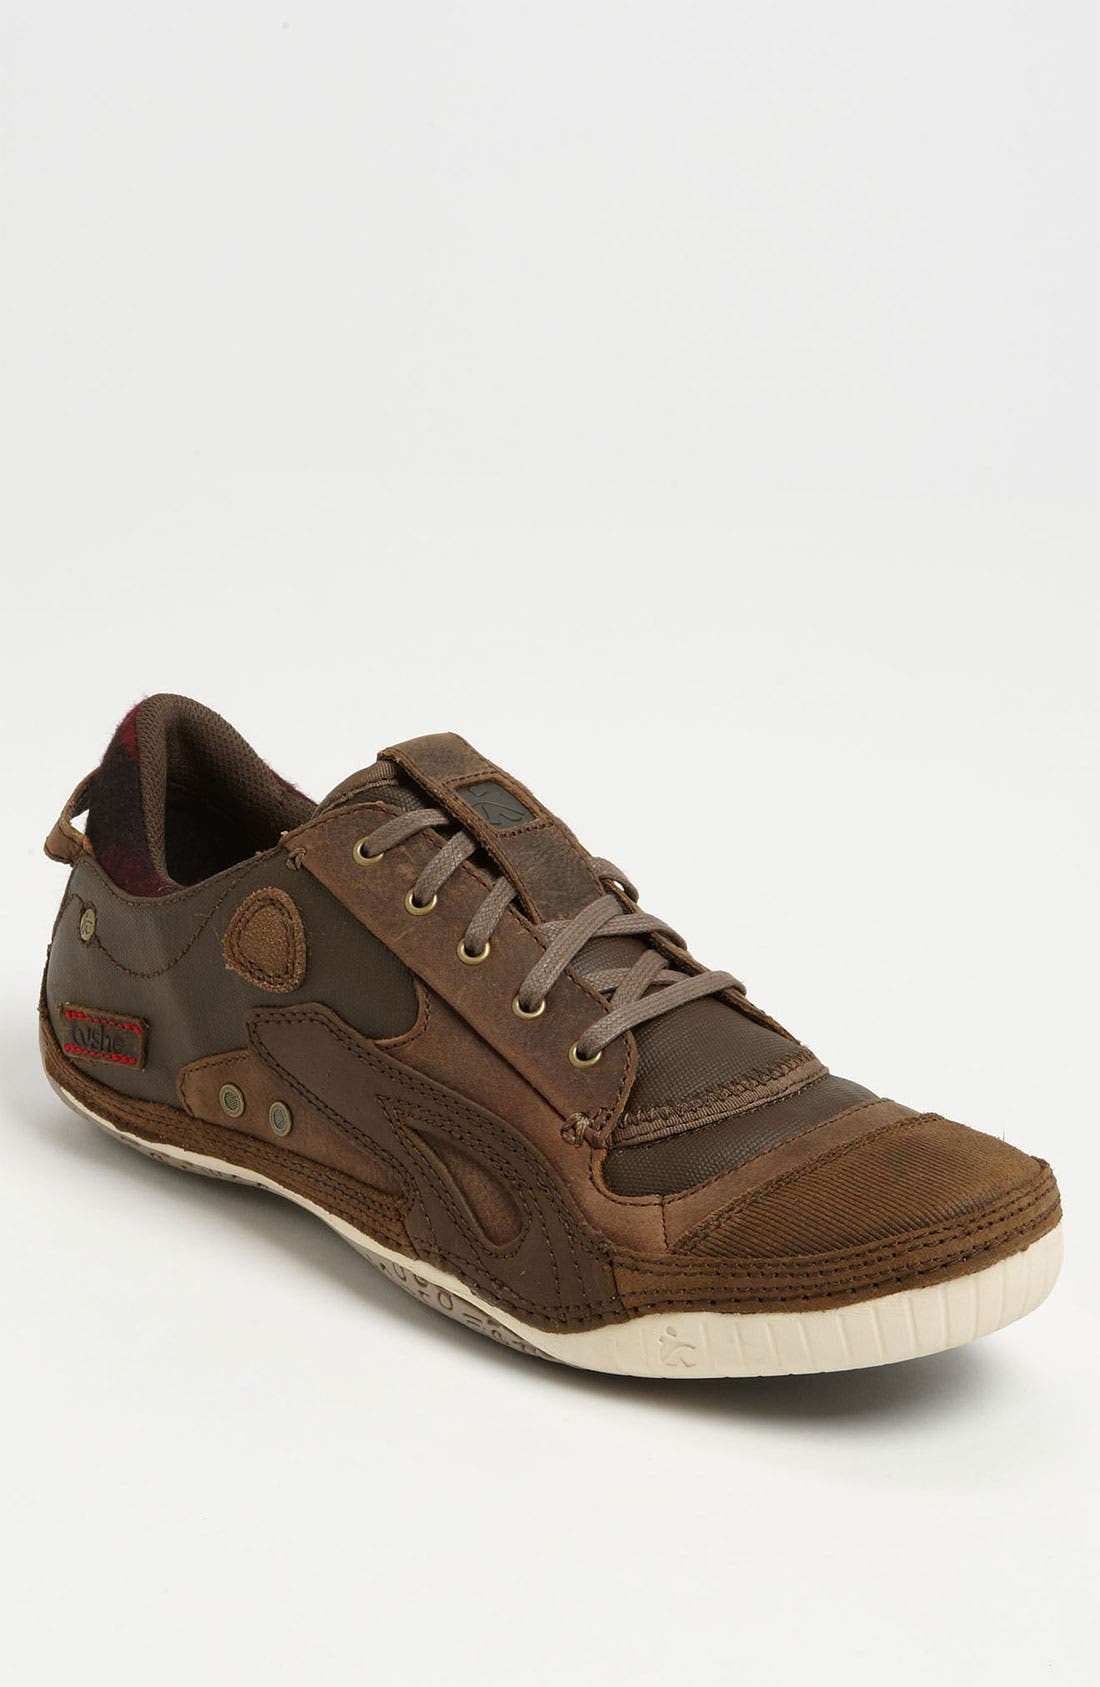 Alternate Image 1 Selected - Cushe 'Boutique Sneak' Sneaker (Men)